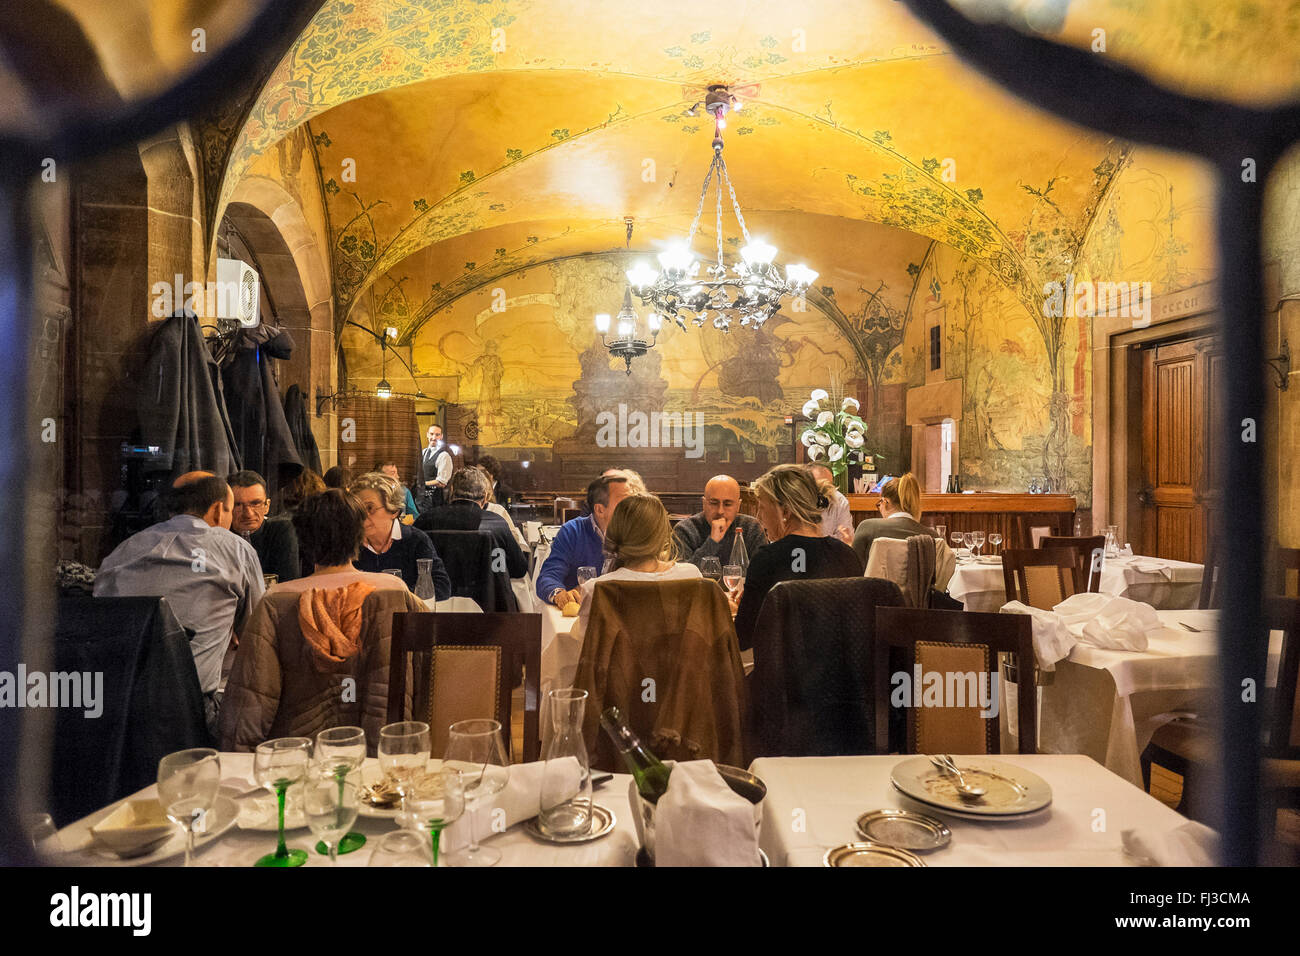 Restaurant dining room, Maison Kammerzell medieval house at night, Strasbourg, Alsace, France Europe - Stock Image